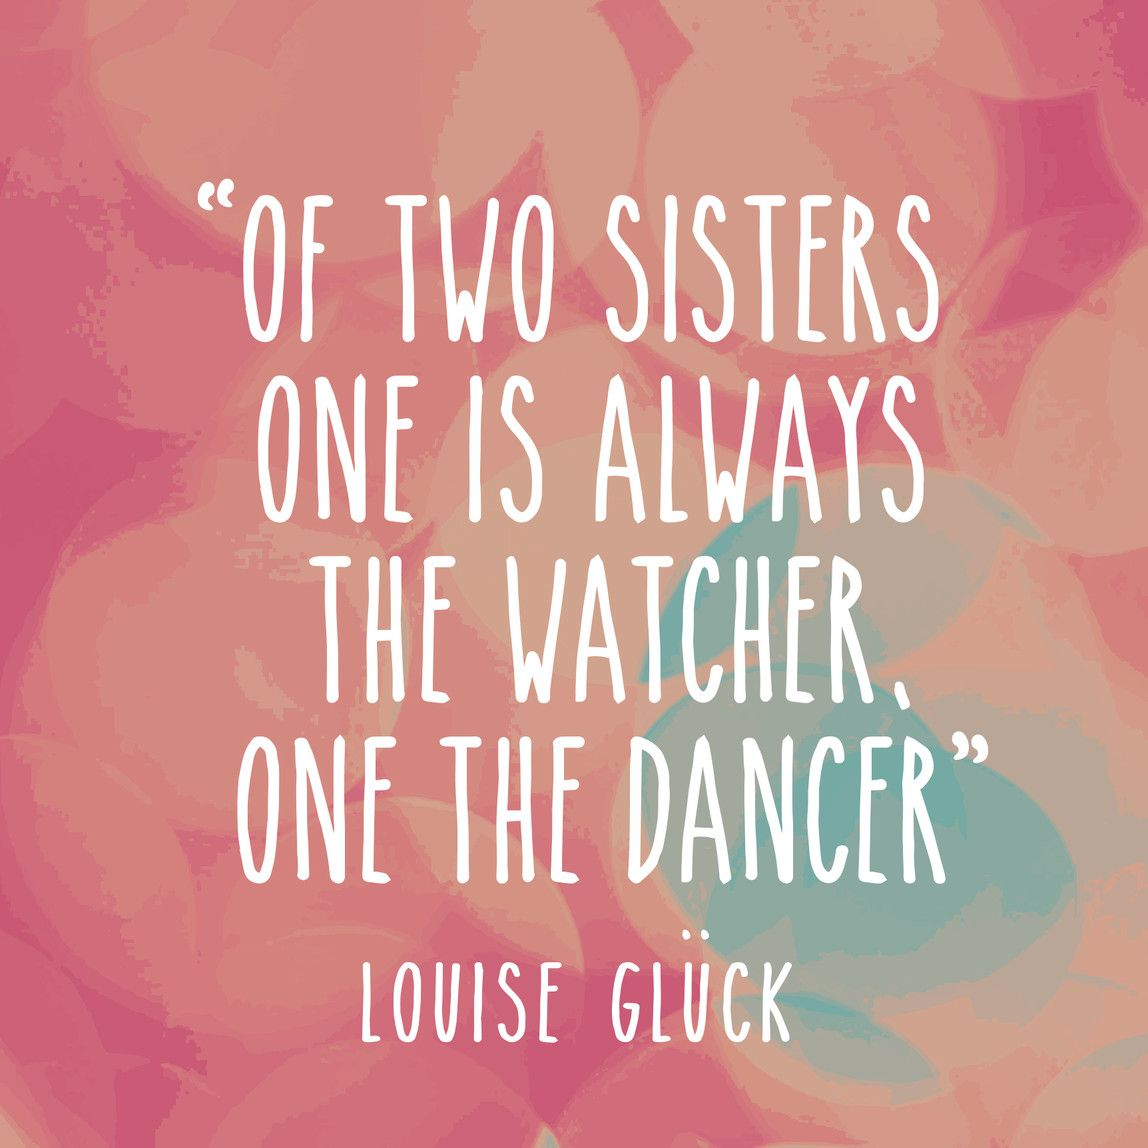 Todayimchannelling Of Two Sisters One Is Always The Watcher One The Dancer Louise Gluck Inspirational Quotes Sayings And Phrases Wise Words